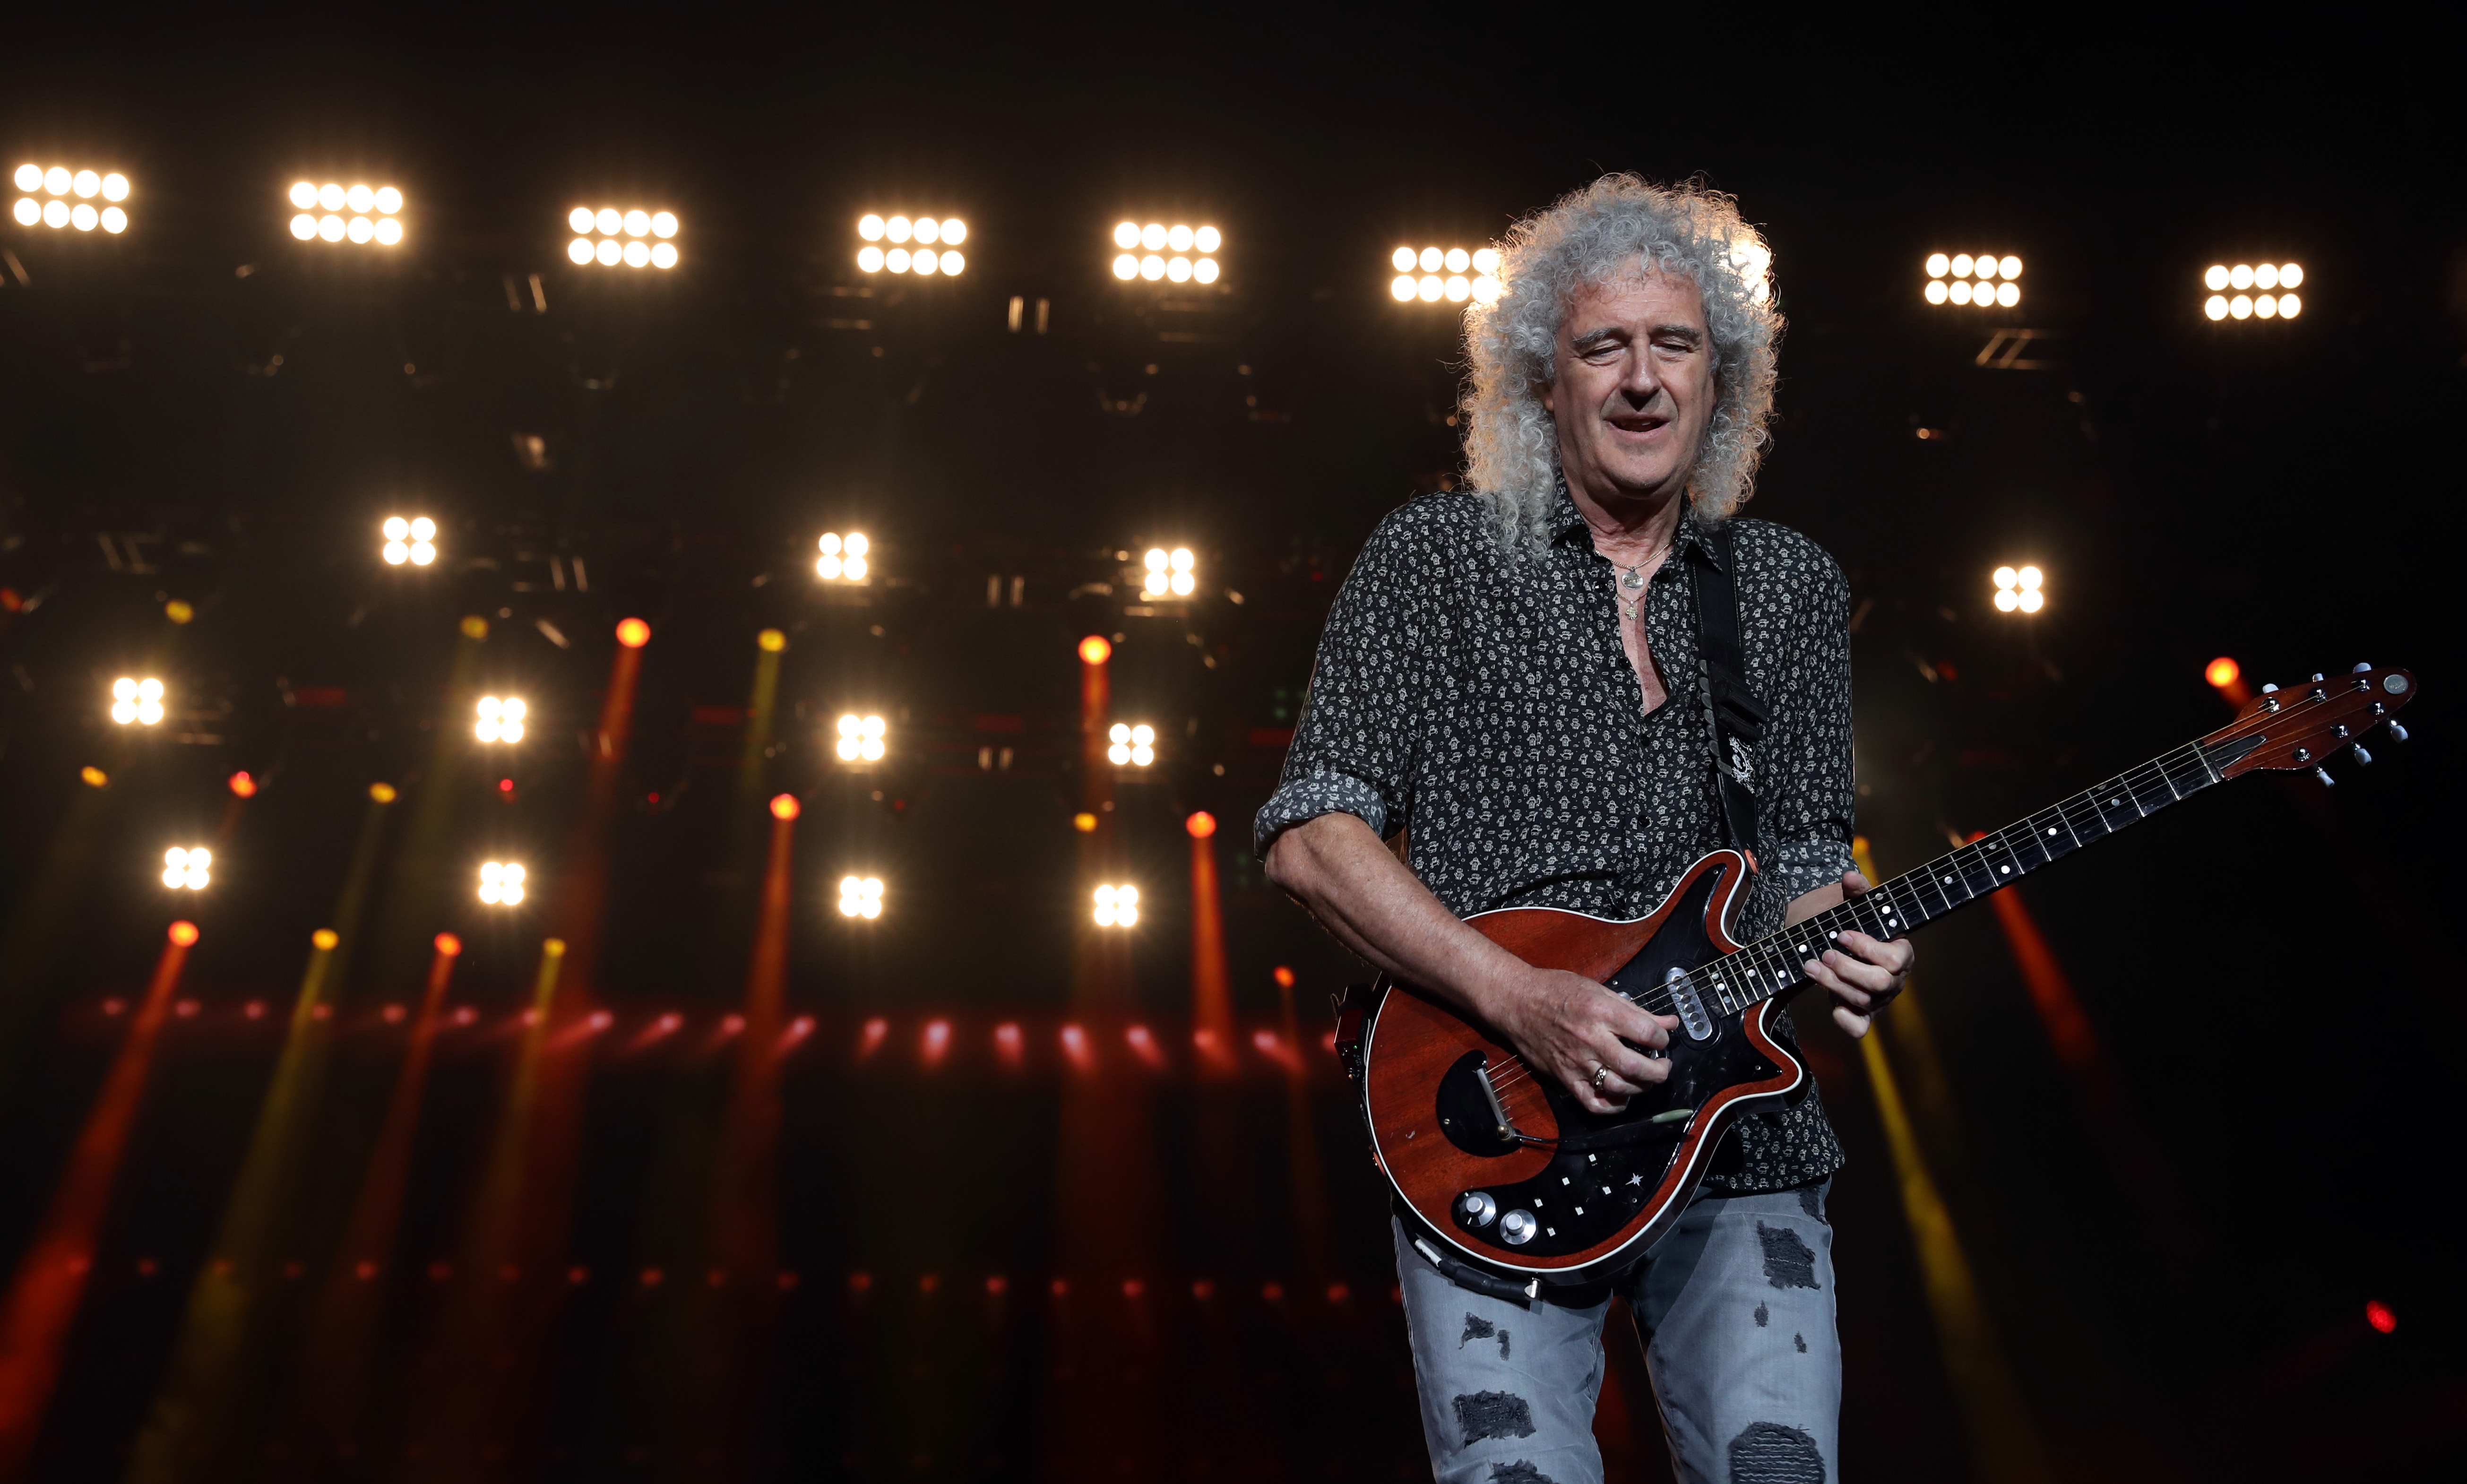 Queen's Brian May Calls for Isolation Across Britain in Coronavirus Statement - EpicNews